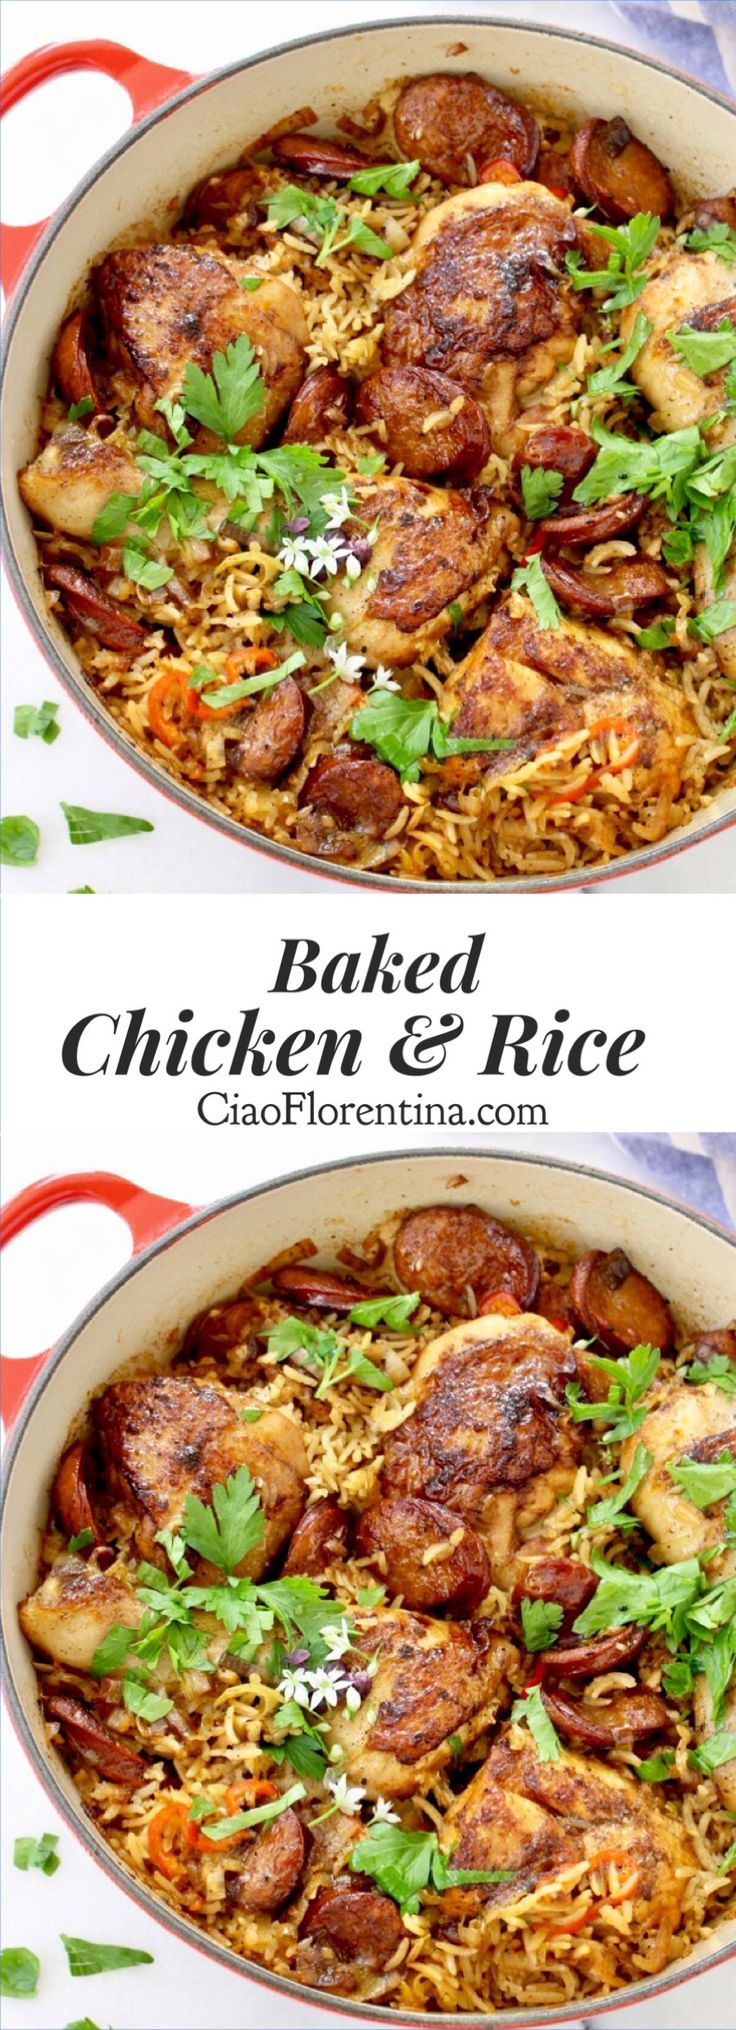 Baked Chicken and Brown Rice with Leeks and Chicken Andouille Sausage | CiaoFlorentina.com @CiaoFlorentina